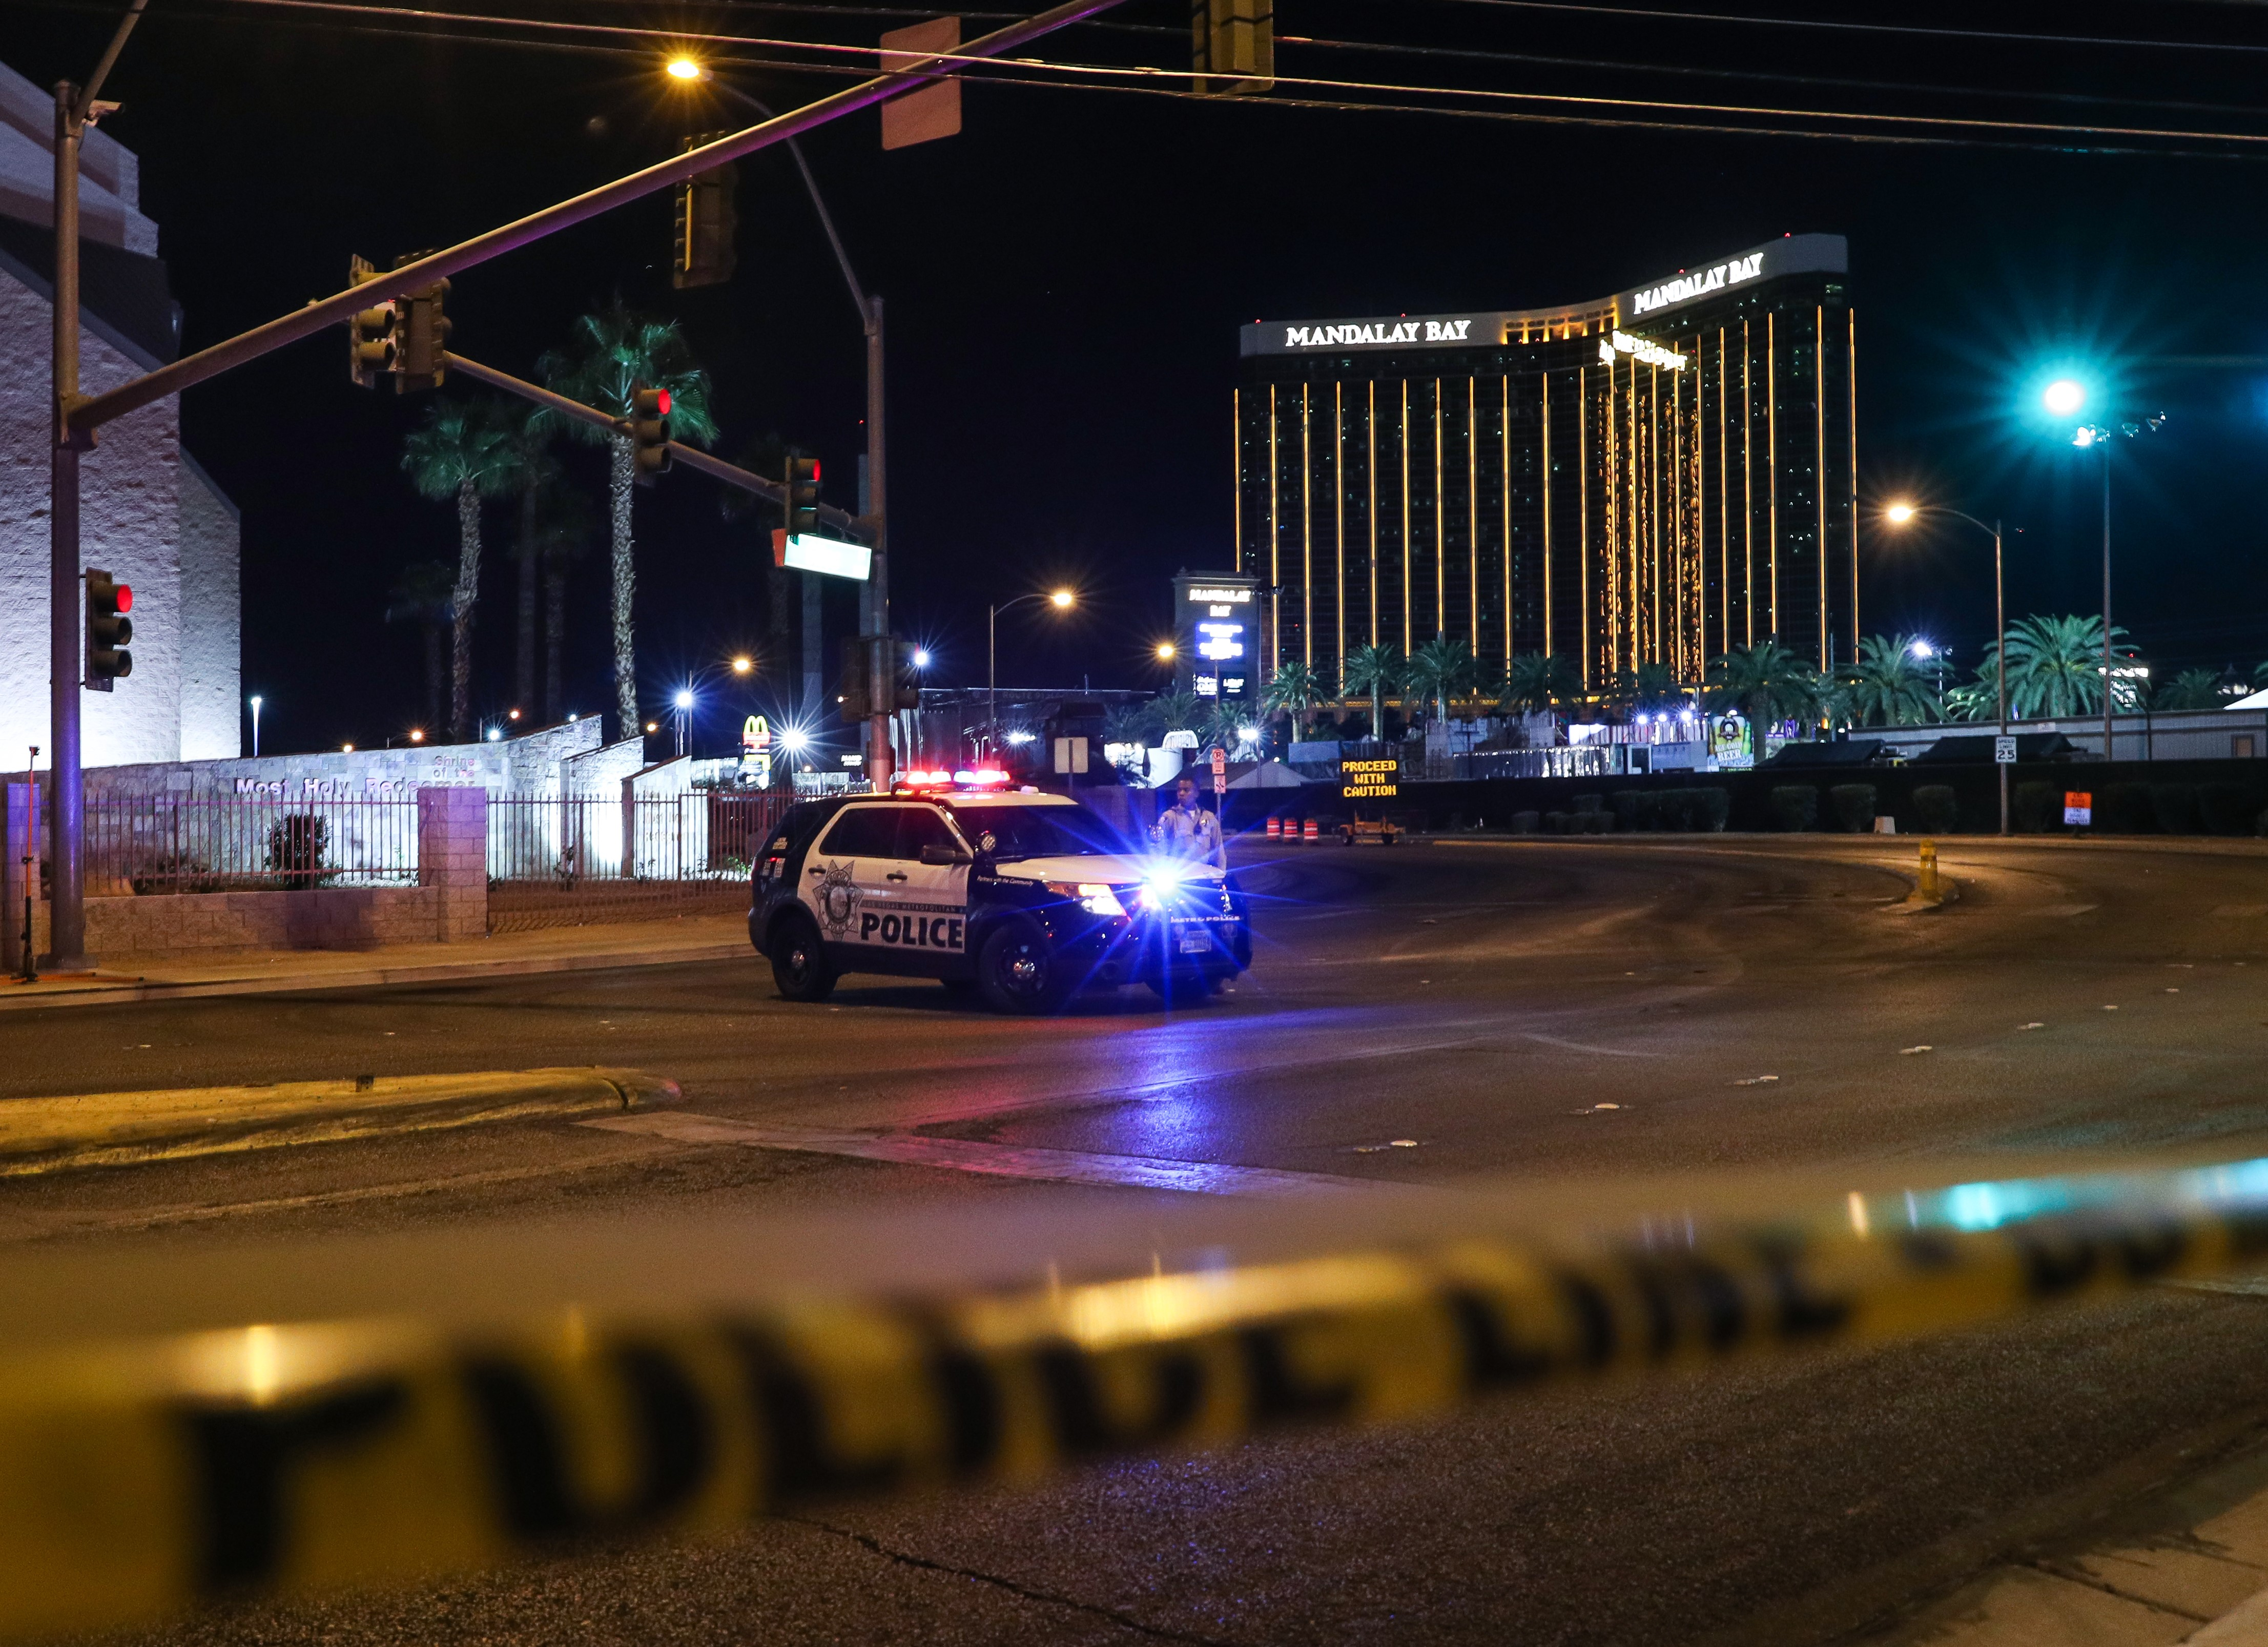 Police block the roads leading to the Mandalay Hotel (background) and inspect the site after a gunman attack in Las Vegas, NV, United States on October 02, 2017.